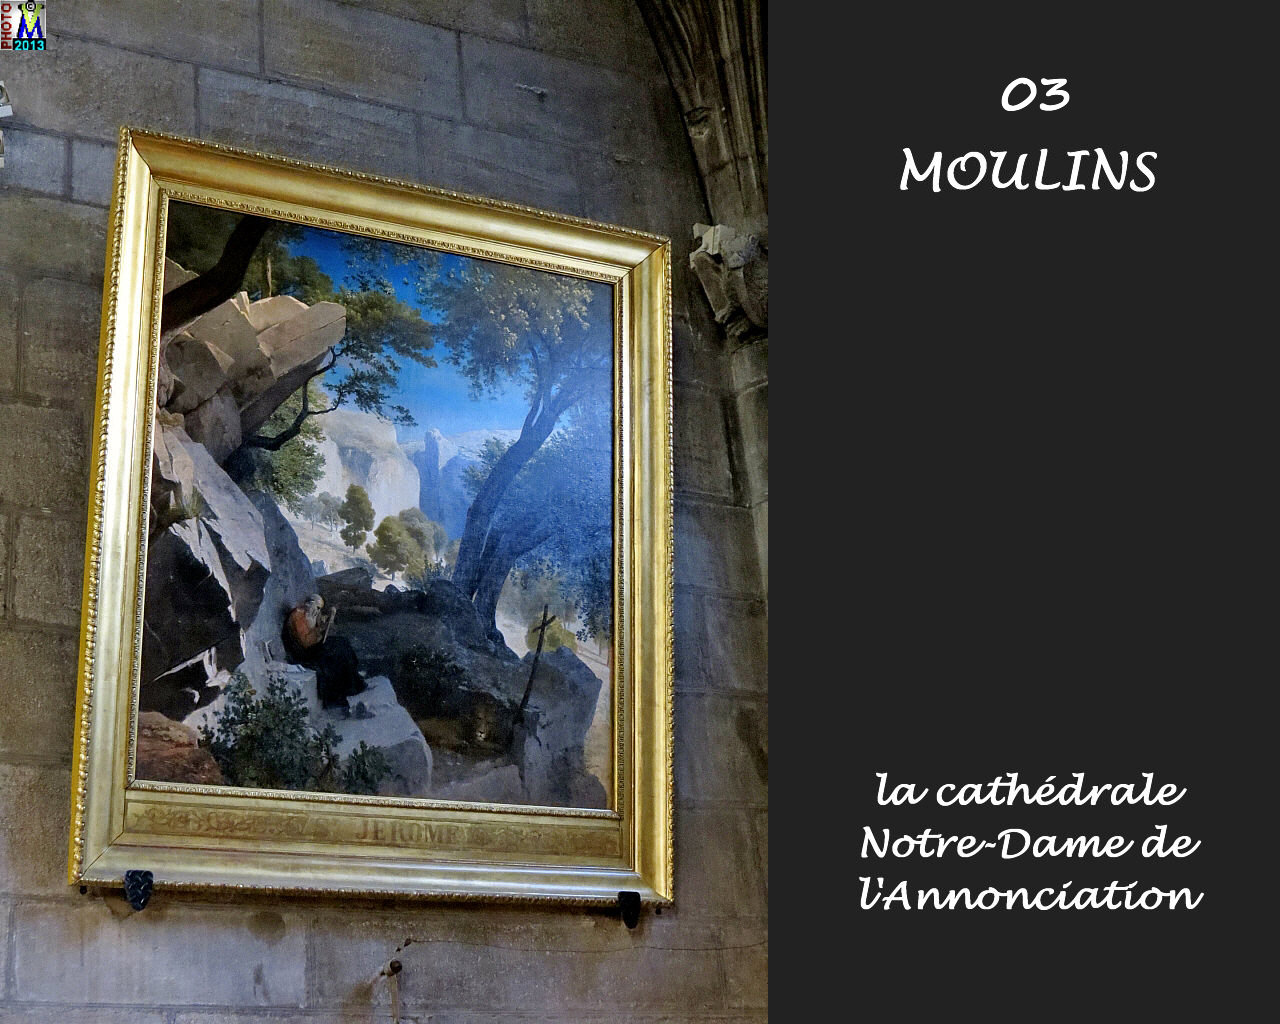 03MOULINS_cathedrale_272.jpg